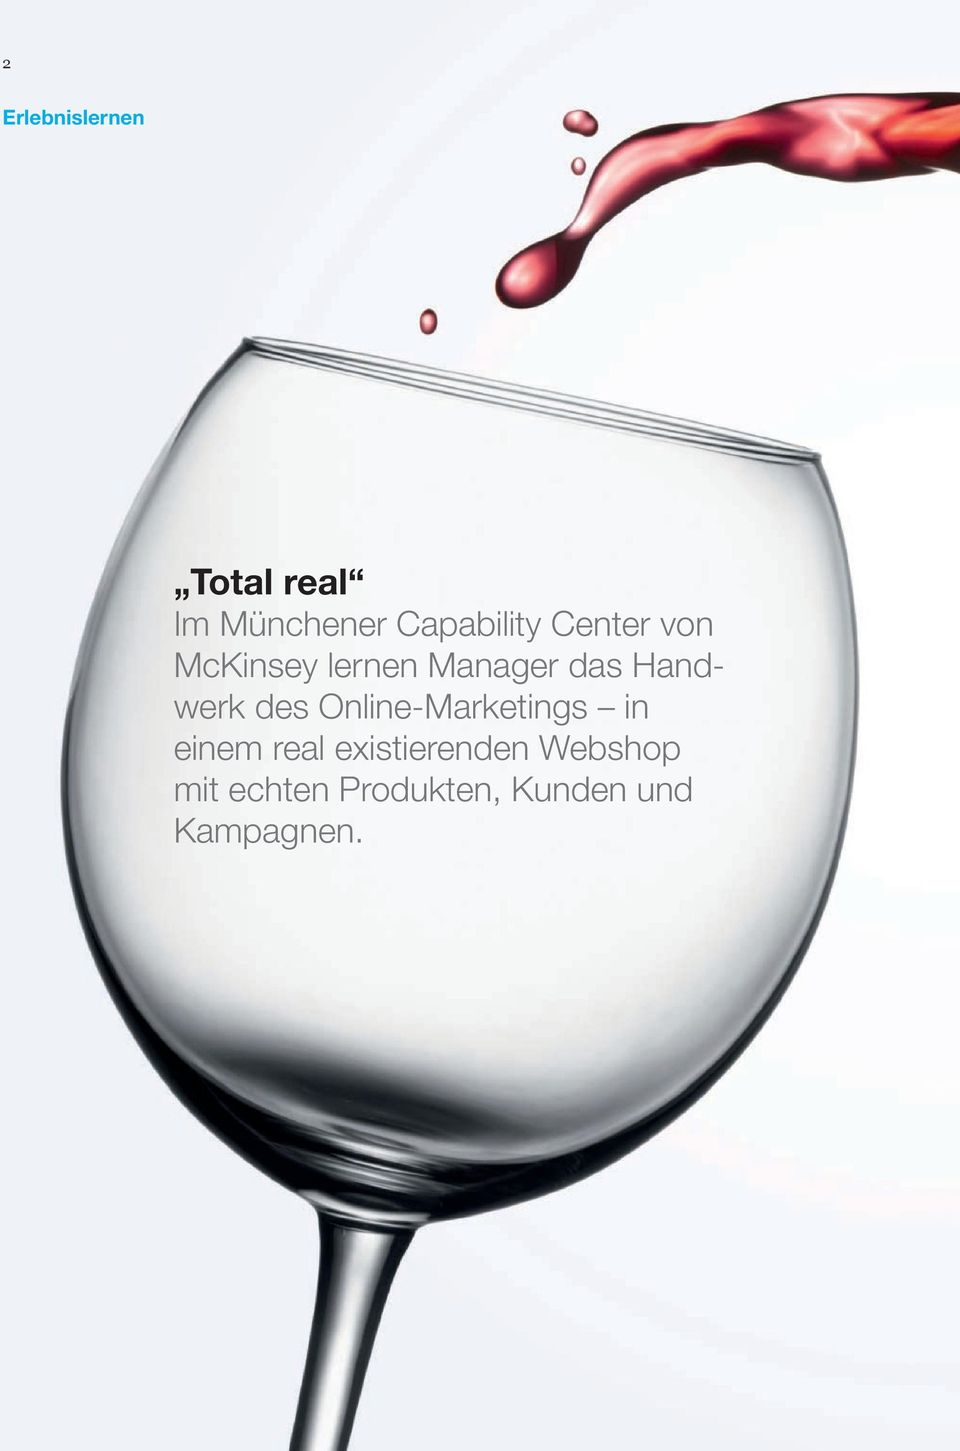 Handwerk des Online-Marketings in einem real